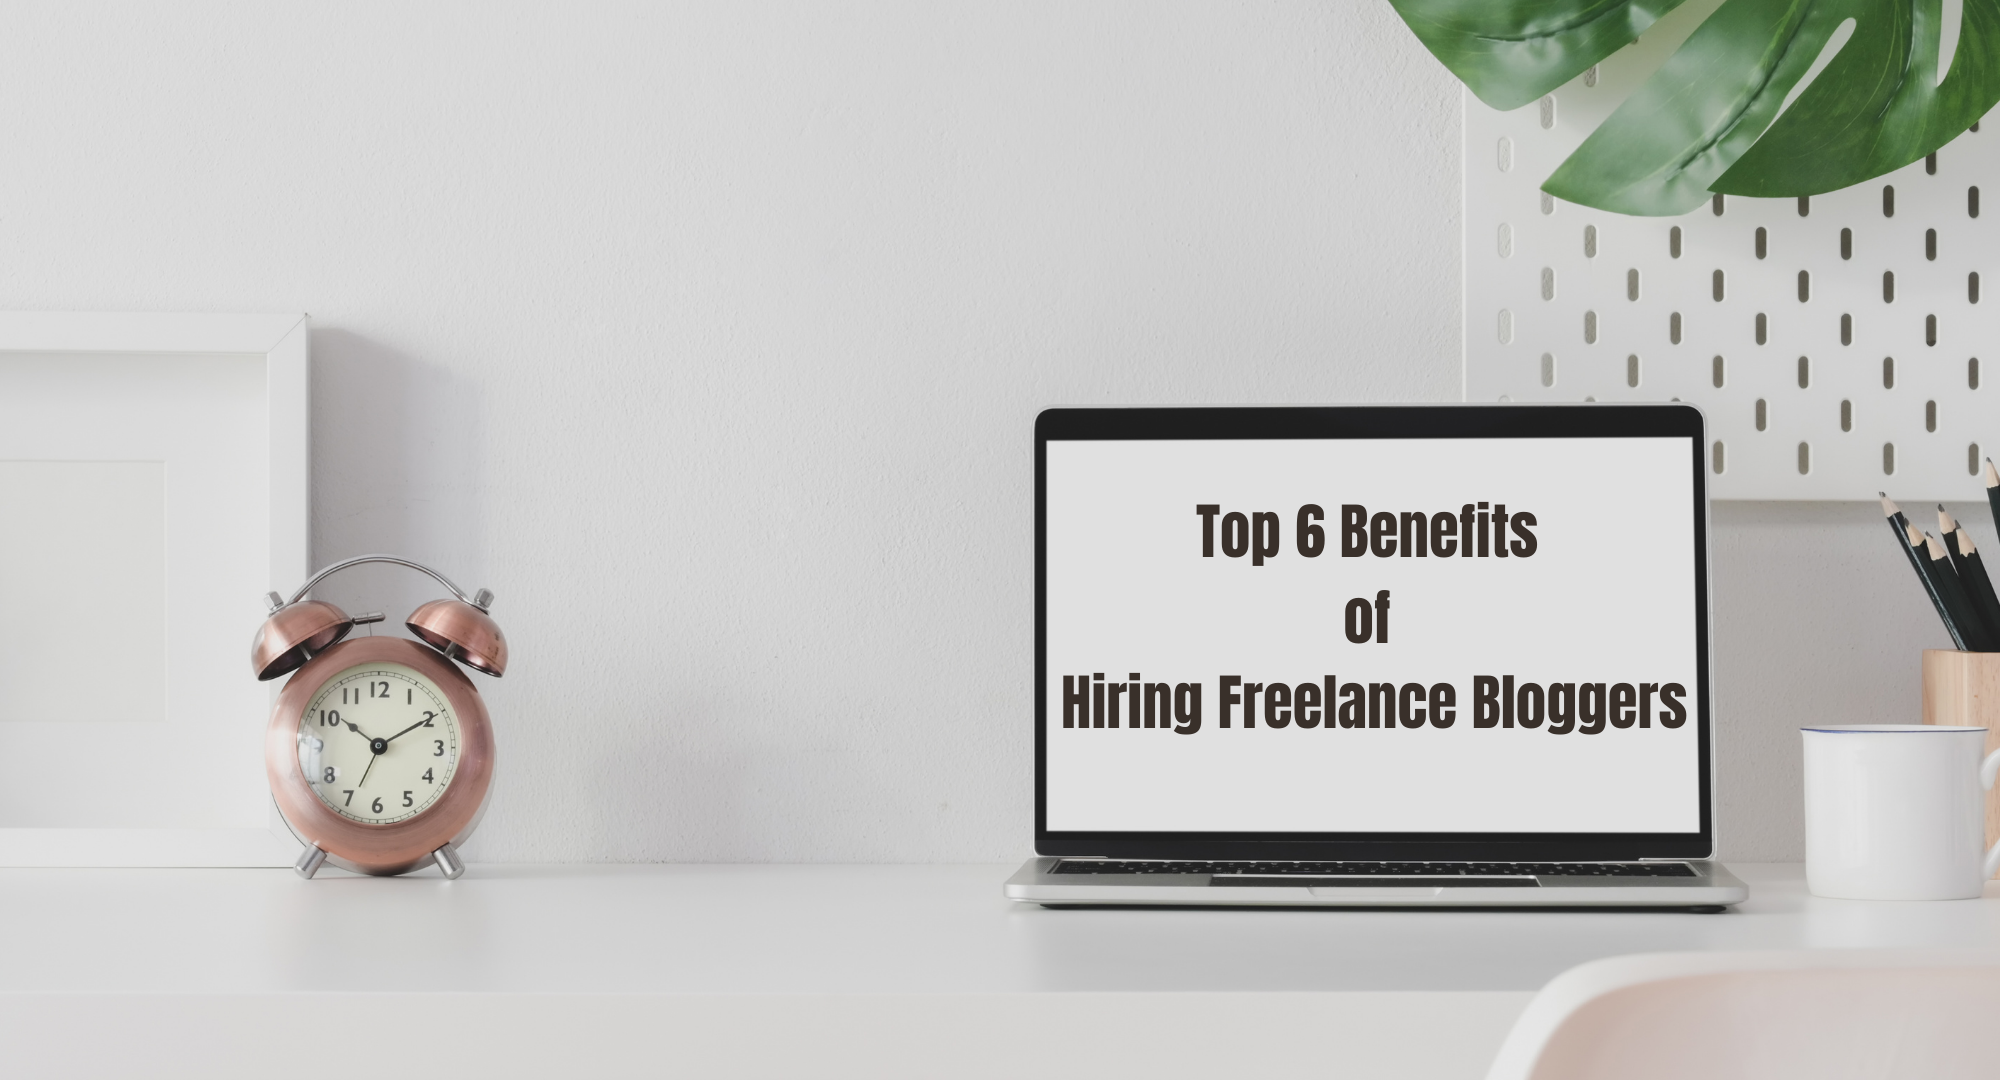 Top 6 Benefits of Hiring Freelance Bloggers